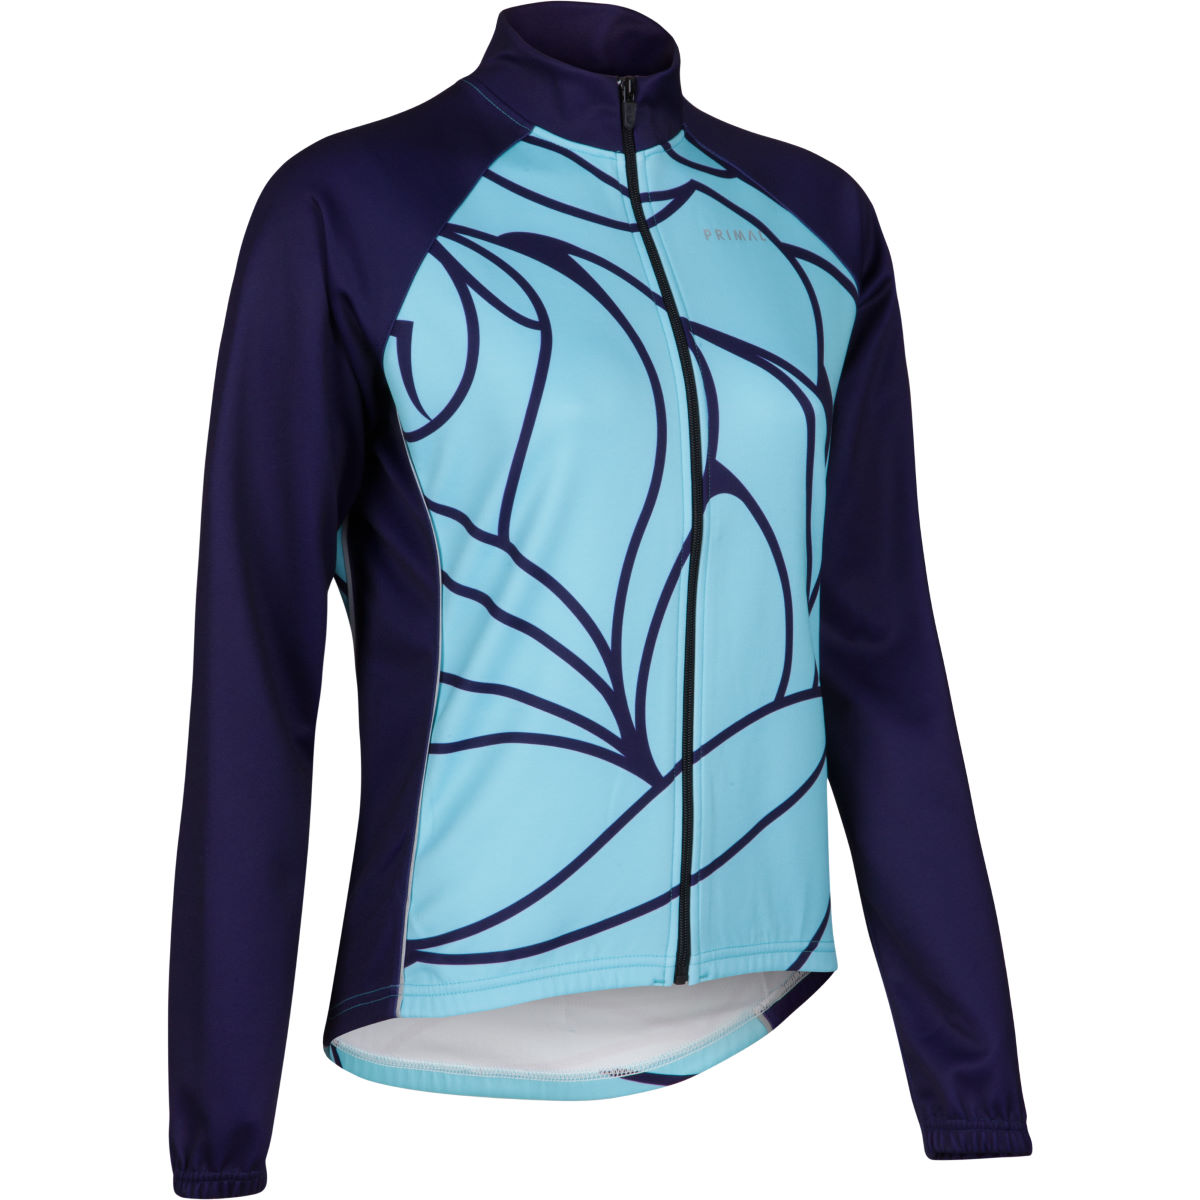 Veste Femme Primal Athene 2nd Layer - X Small Purple/Blue  Vestes